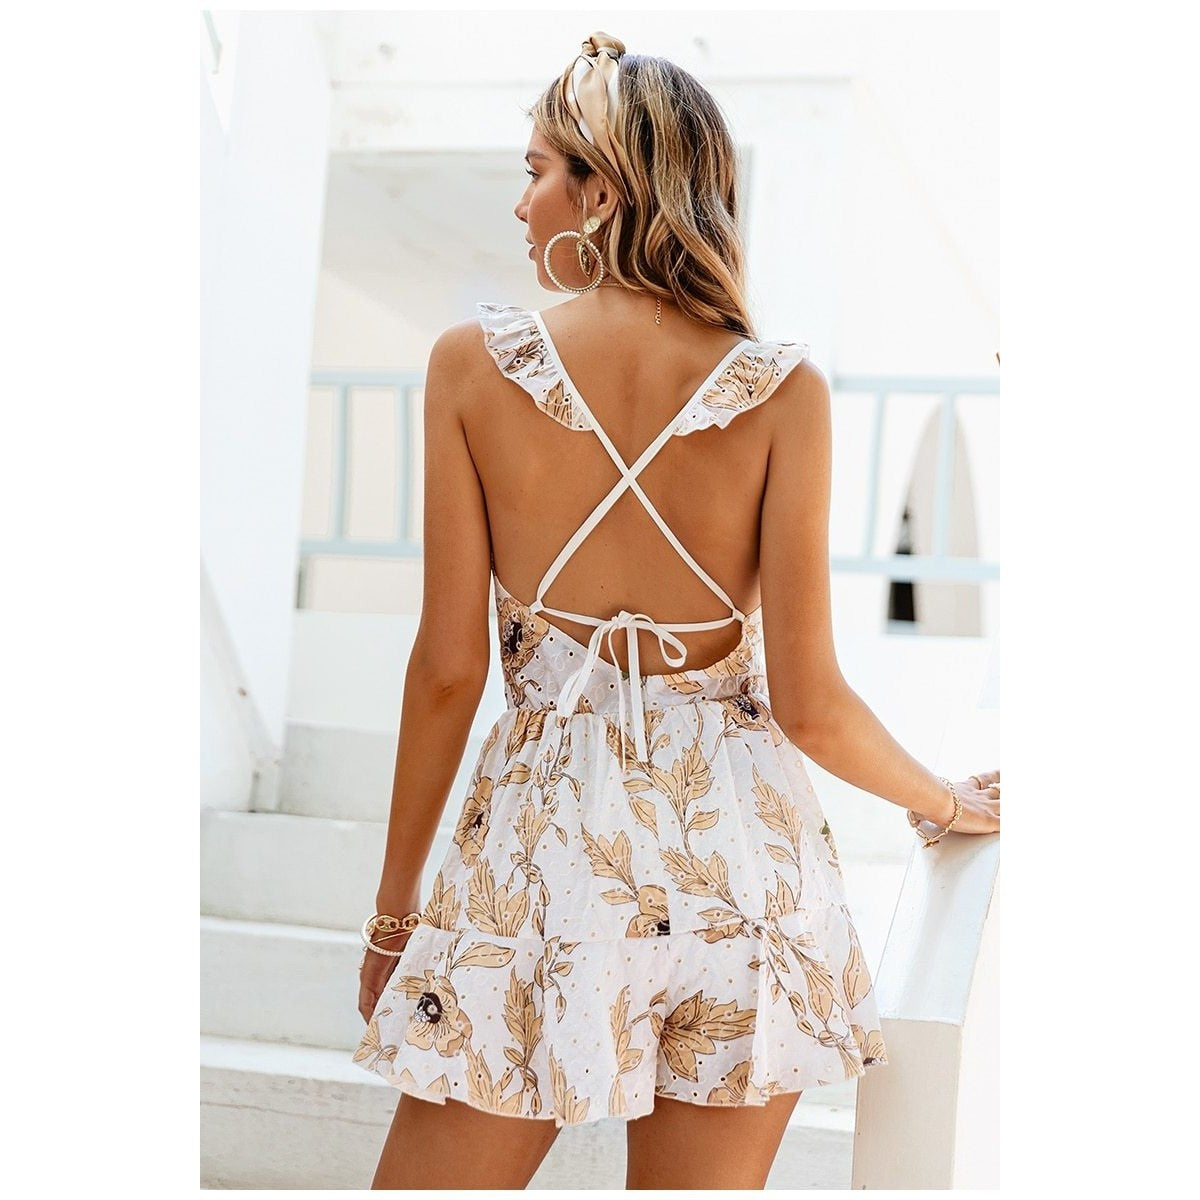 Maisy Ruffled Floral Print Romper